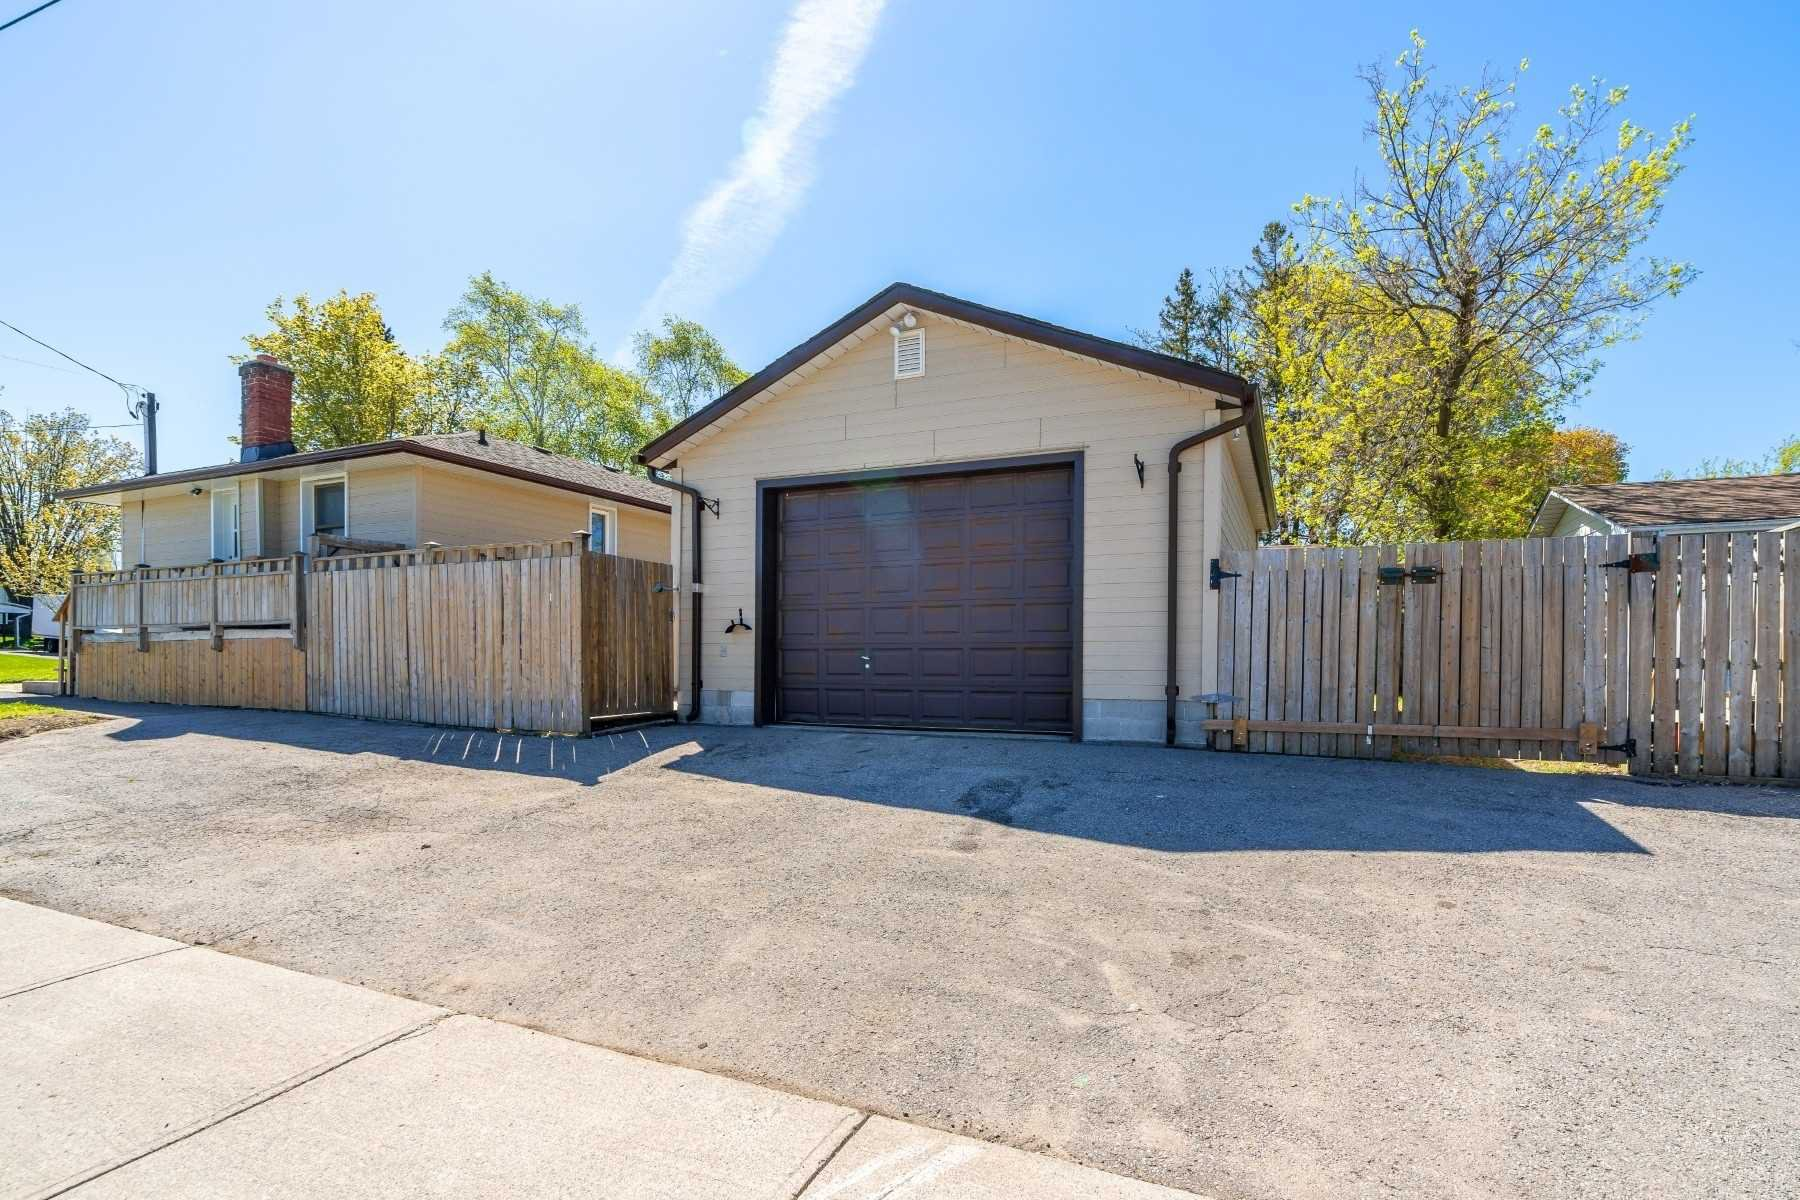 Photo 12: Photos: 40 Eastlawn Street in Oshawa: Donevan House (Bungalow) for sale : MLS®# E4769026